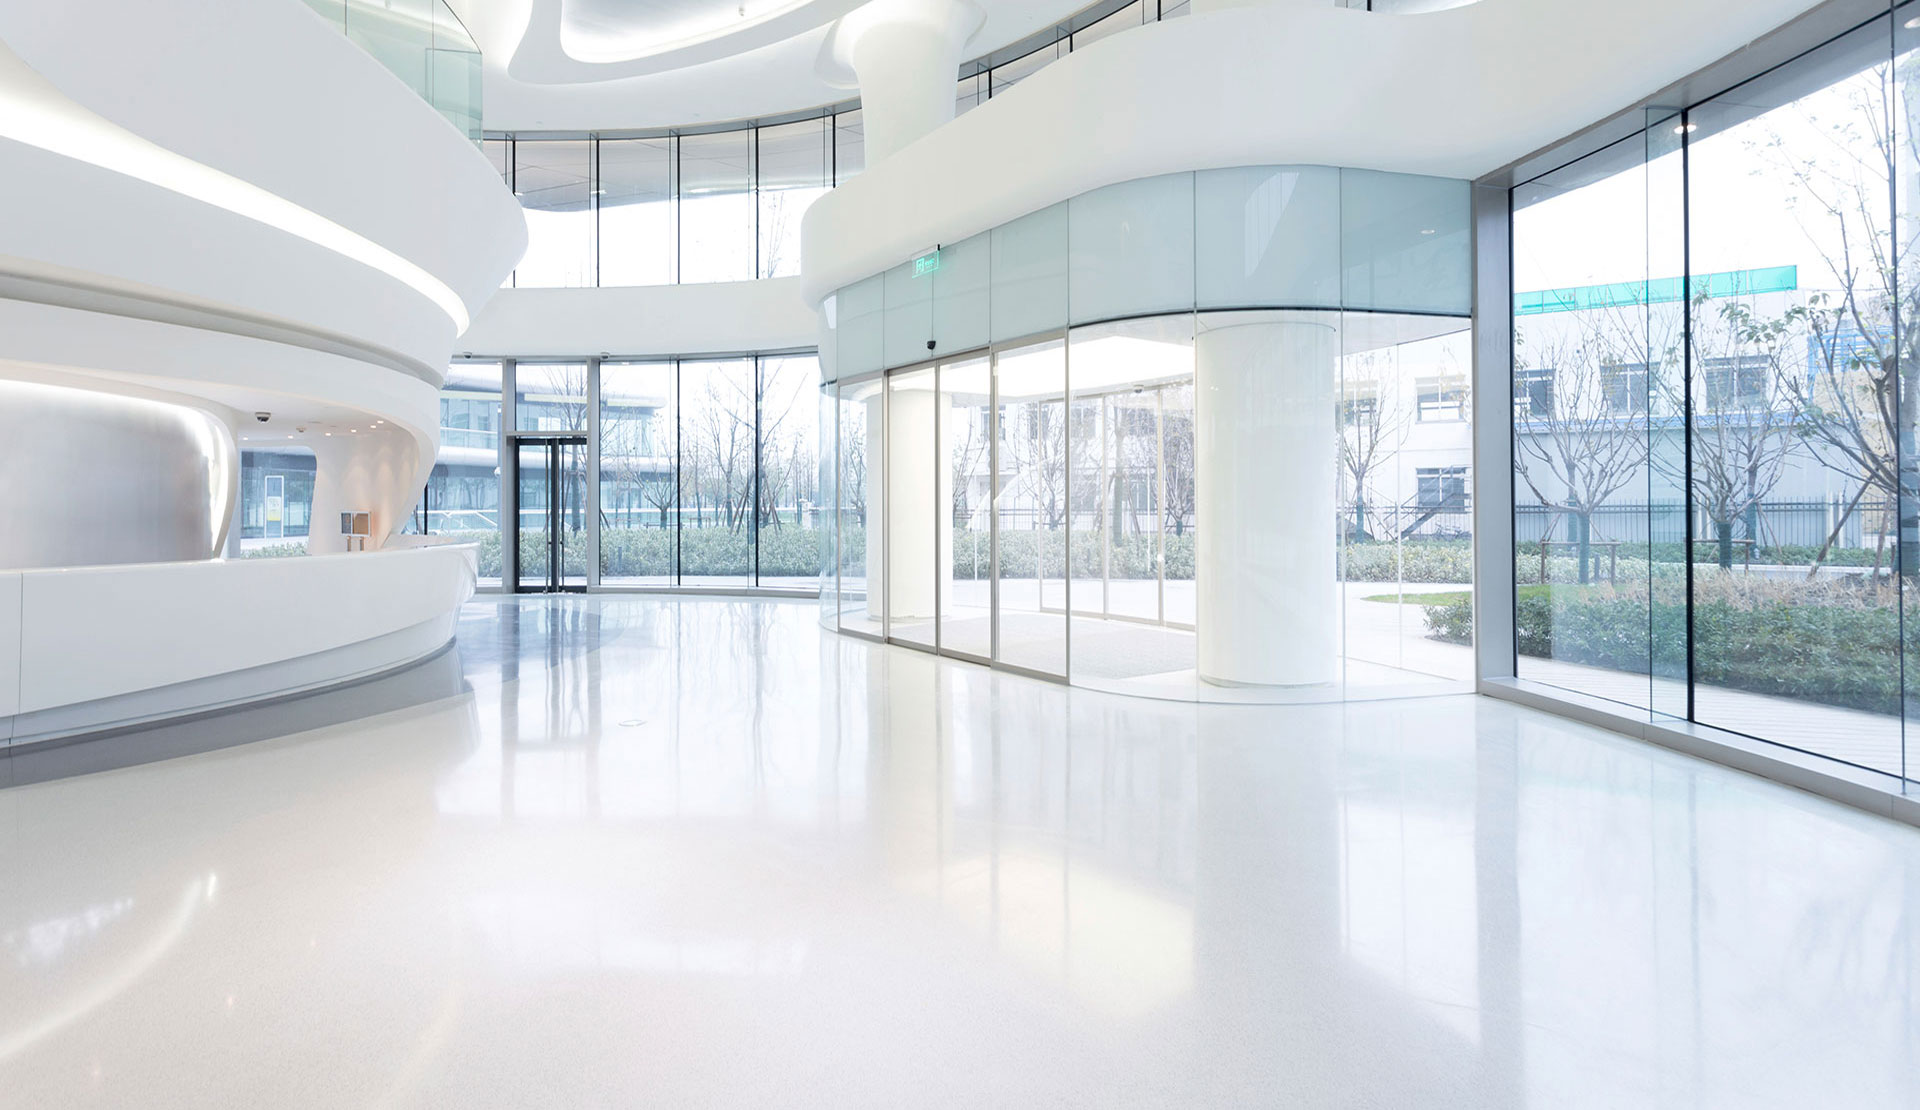 MEDICAL AND HEALTHCARE FACILITIES